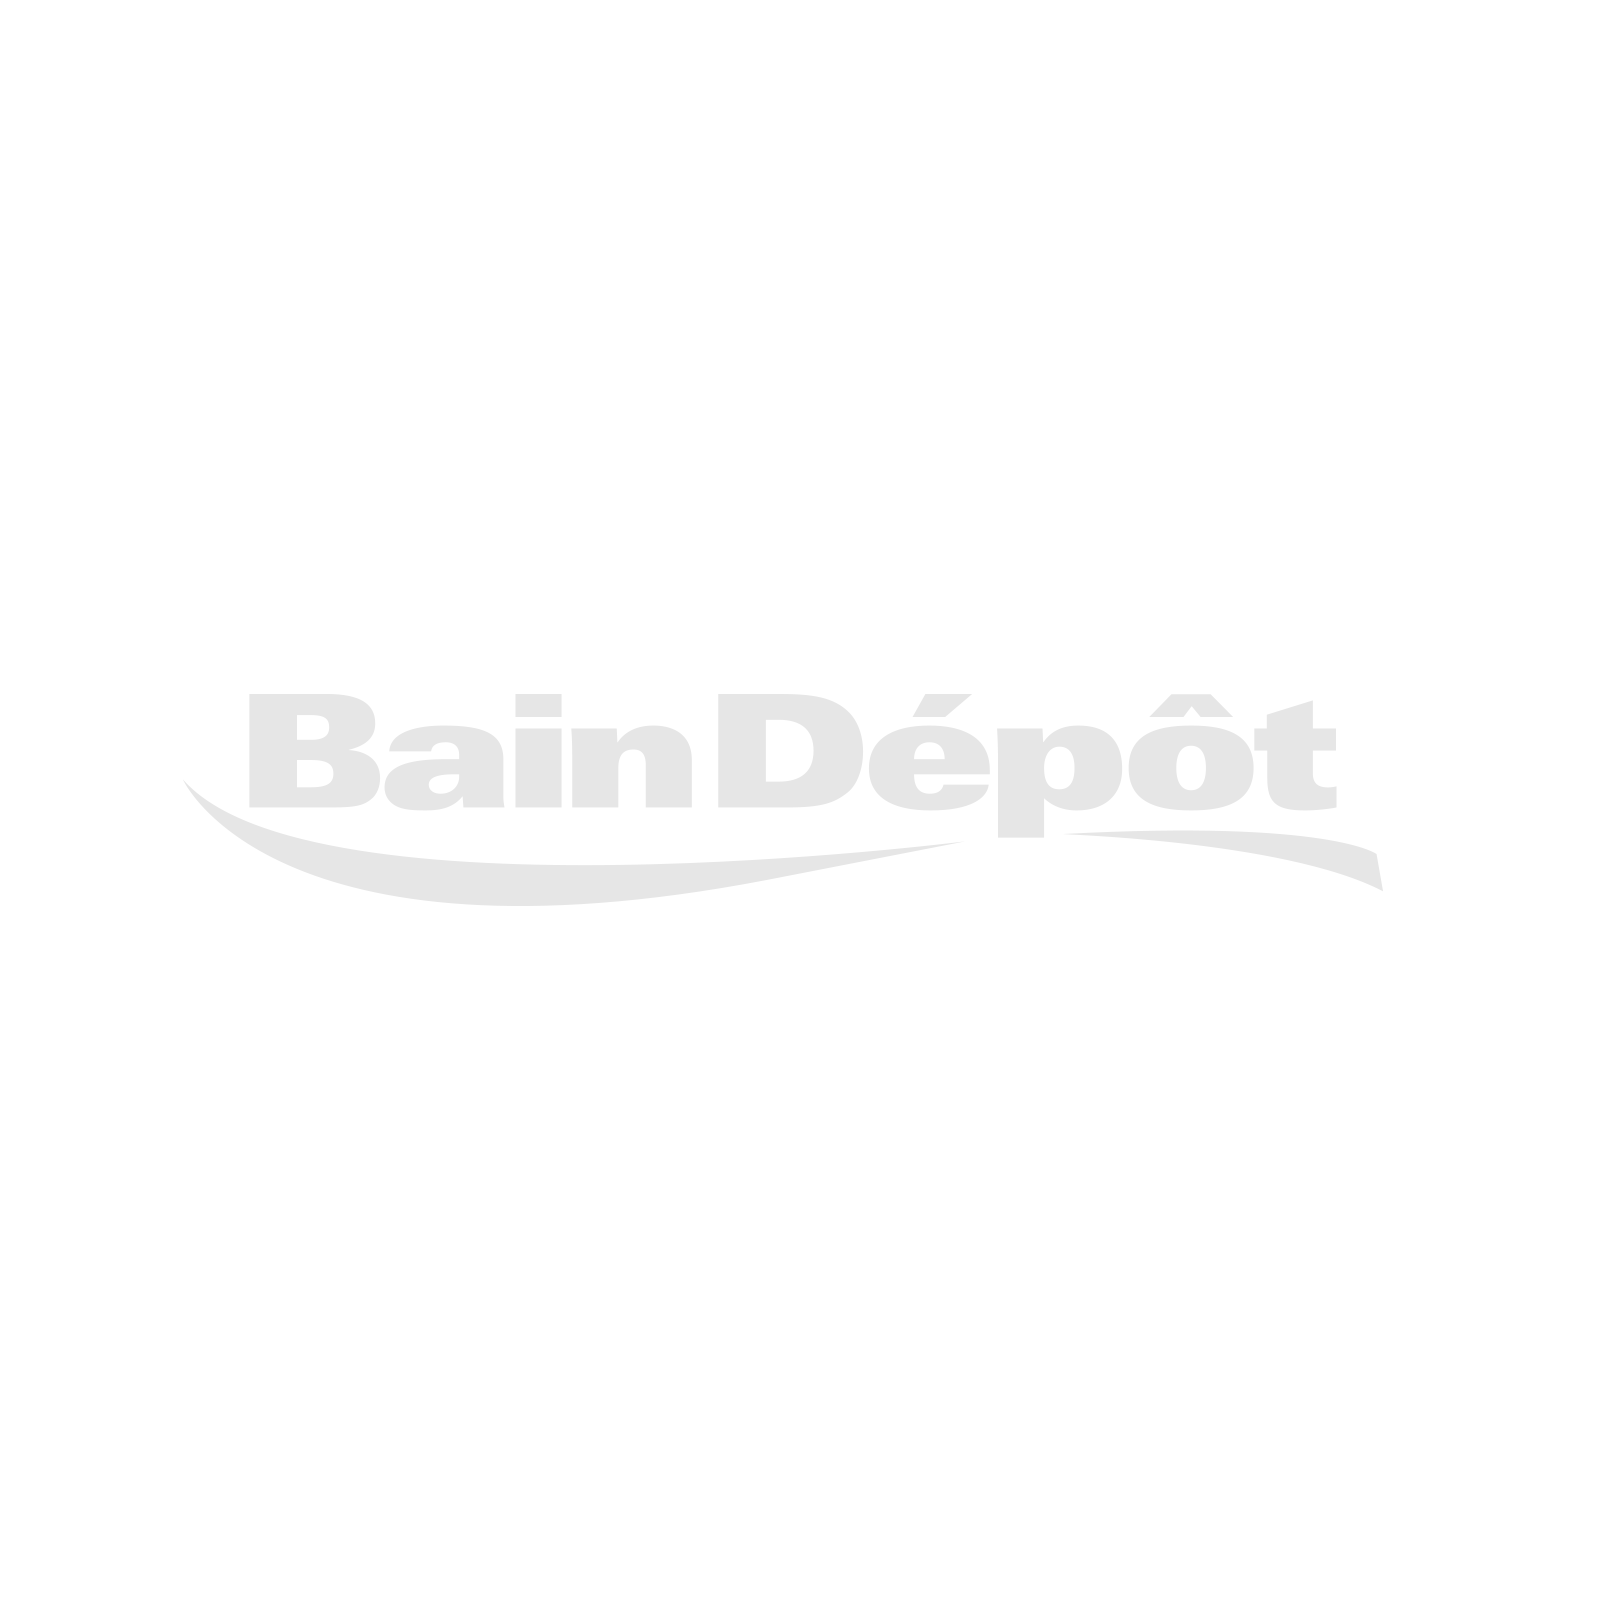 "60"" x 36"" rectangular shower base for left corner installation with hidden drain"